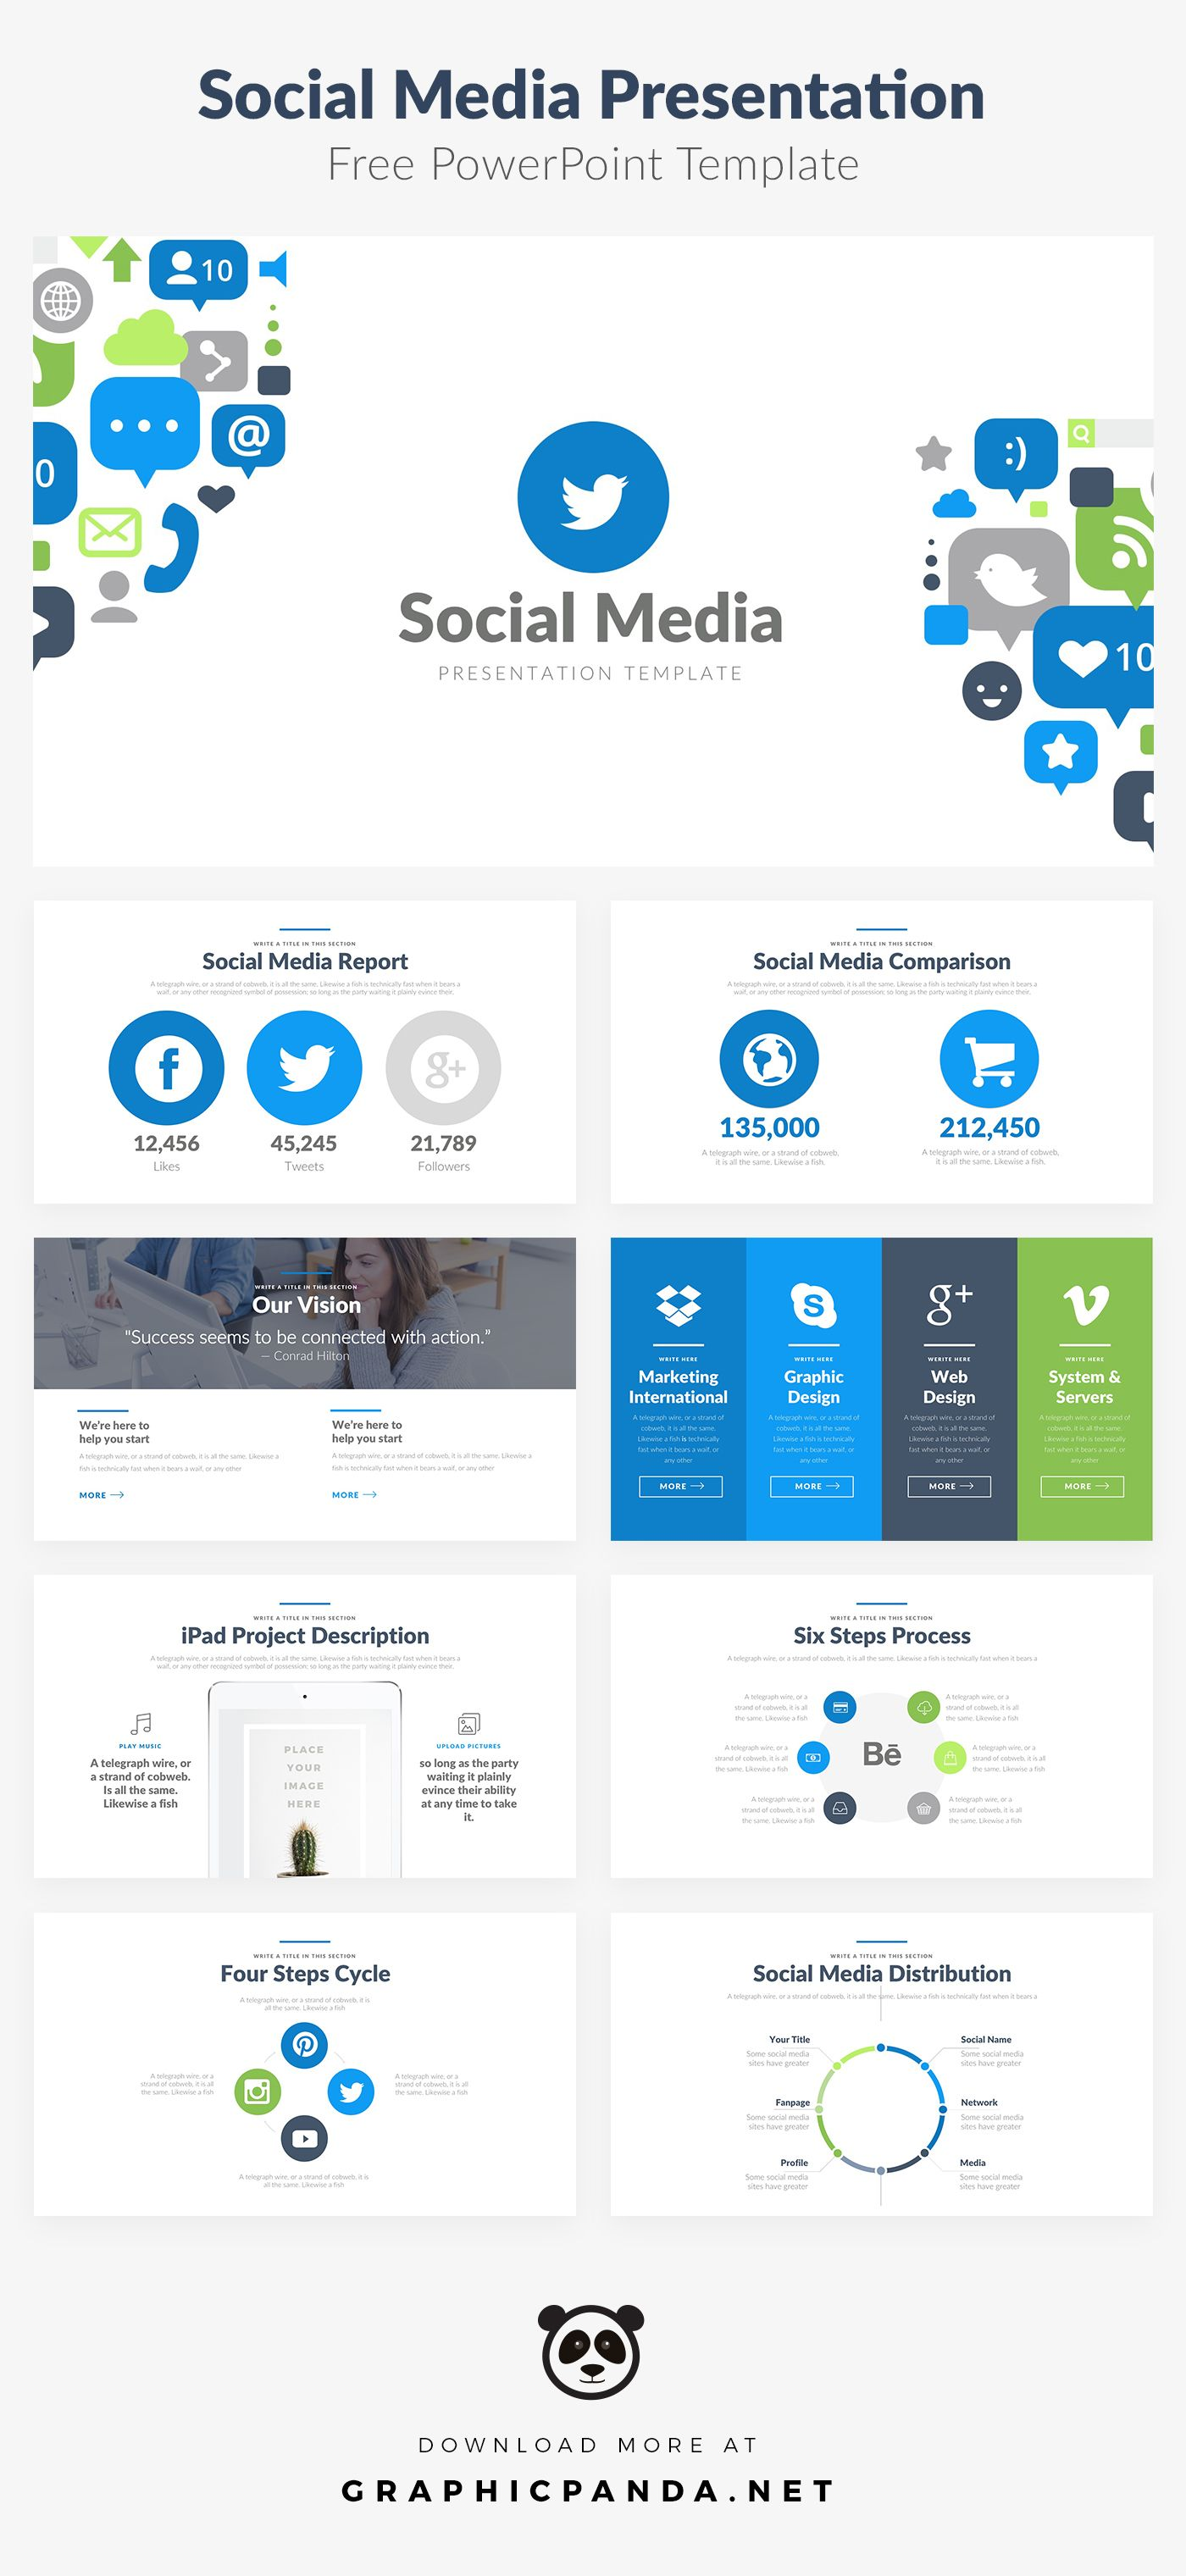 Free powerpoint template social media presentation on behance free powerpoint template social media presentation on behance toneelgroepblik Image collections